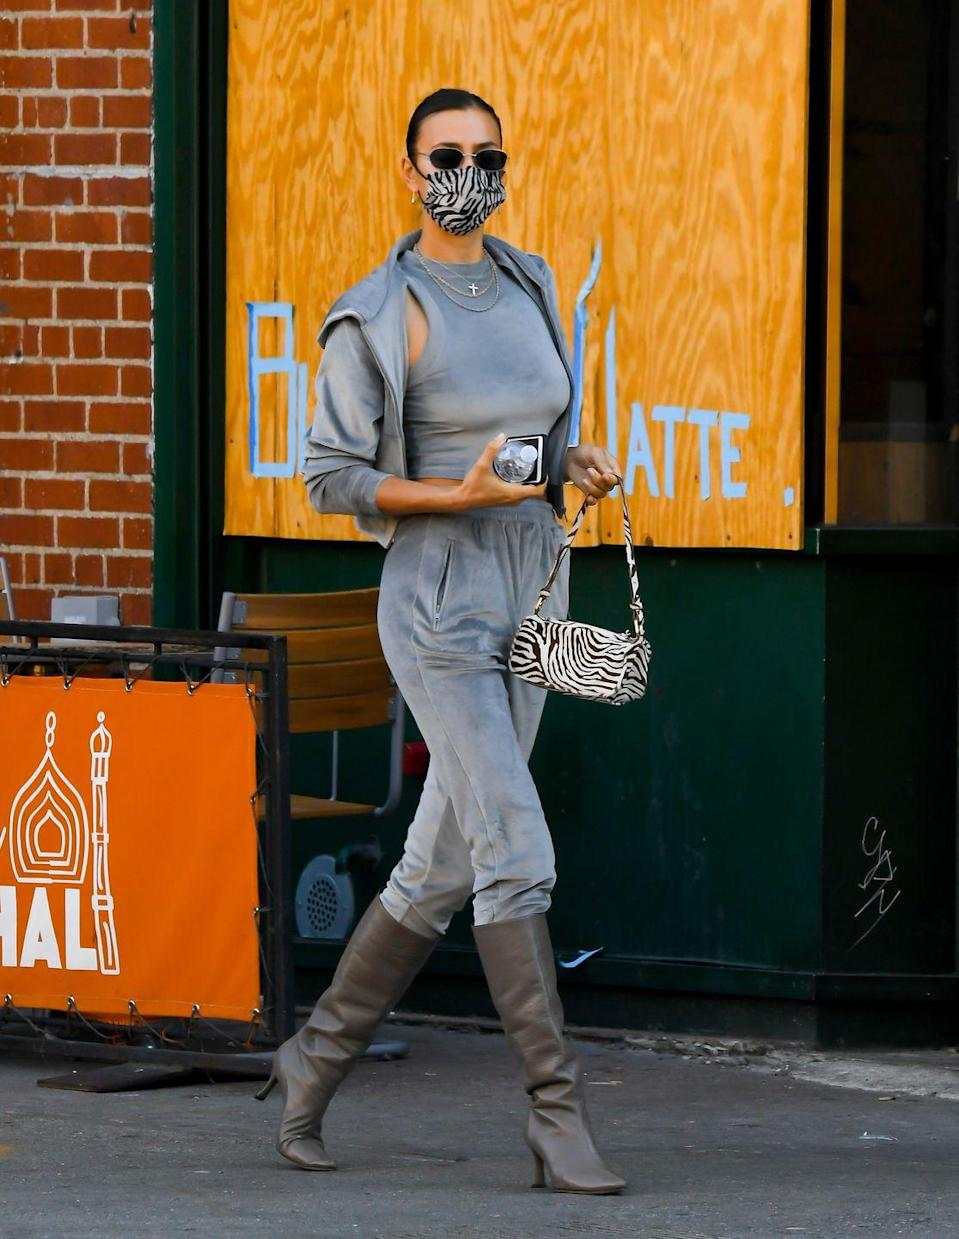 """<p>The supermodel was spotted running errands and picking up coffee in New York City on November 9 wearing the comfiest of outfits during the pandemic.</p><p>The 34-year-old wore a grey velour tracksuit from <a href=""""https://www.elle.com/uk/life-and-culture/g34434604/kim-kardashian-career/"""" rel=""""nofollow noopener"""" target=""""_blank"""" data-ylk=""""slk:Kim Kardashian"""" class=""""link rapid-noclick-resp"""">Kim Kardashian</a>'s shapewear brand <a href=""""https://www.elle.com/uk/life-and-culture/culture/a33940186/kim-kardashian-homeware-interiors-business/"""" rel=""""nofollow noopener"""" target=""""_blank"""" data-ylk=""""slk:SKIMS"""" class=""""link rapid-noclick-resp"""">SKIMS</a> which consisted of a <a href=""""https://skims.com/products/velour-hoodie-smoke"""" rel=""""nofollow noopener"""" target=""""_blank"""" data-ylk=""""slk:hoodie"""" class=""""link rapid-noclick-resp"""">hoodie</a>, <a href=""""https://skims.com/products/velour-crew-neck-tank-smoke"""" rel=""""nofollow noopener"""" target=""""_blank"""" data-ylk=""""slk:crew neck vest top"""" class=""""link rapid-noclick-resp"""">crew neck vest top</a> and jogging <a href=""""https://skims.com/products/velour-jogger-smoke"""" rel=""""nofollow noopener"""" target=""""_blank"""" data-ylk=""""slk:bottoms"""" class=""""link rapid-noclick-resp"""">bottoms</a>. She teamed the look with a zebra-print mask and matching printed handbag, black sunglasses and grey pointed knee-high boots.</p><p><a class=""""link rapid-noclick-resp"""" href=""""https://go.redirectingat.com?id=127X1599956&url=https%3A%2F%2Fwww.marksandspencer.com%2Fpure-cashmere-textured-joggers%2Fp%2Fclp60459655%3Fcolor%3DGREYMIX&sref=https%3A%2F%2Fwww.elle.com%2Fuk%2Ffashion%2Fcelebrity-style%2Fg34359706%2Firina-shayk-style-file%2F"""" rel=""""nofollow noopener"""" target=""""_blank"""" data-ylk=""""slk:SHOP GREY CASHMERE JOGGERS"""">SHOP GREY CASHMERE JOGGERS</a></p><p><a class=""""link rapid-noclick-resp"""" href=""""https://go.redirectingat.com?id=127X1599956&url=https%3A%2F%2Fwww.net-a-porter.com%2Fen-gb%2Fshop%2Fproduct%2Fgianvito-rossi%2F85-suede-knee-boots%2F1289482&sref=https%3A%2F%2Fwww.elle.com%2Fuk%2Ffashion%2"""